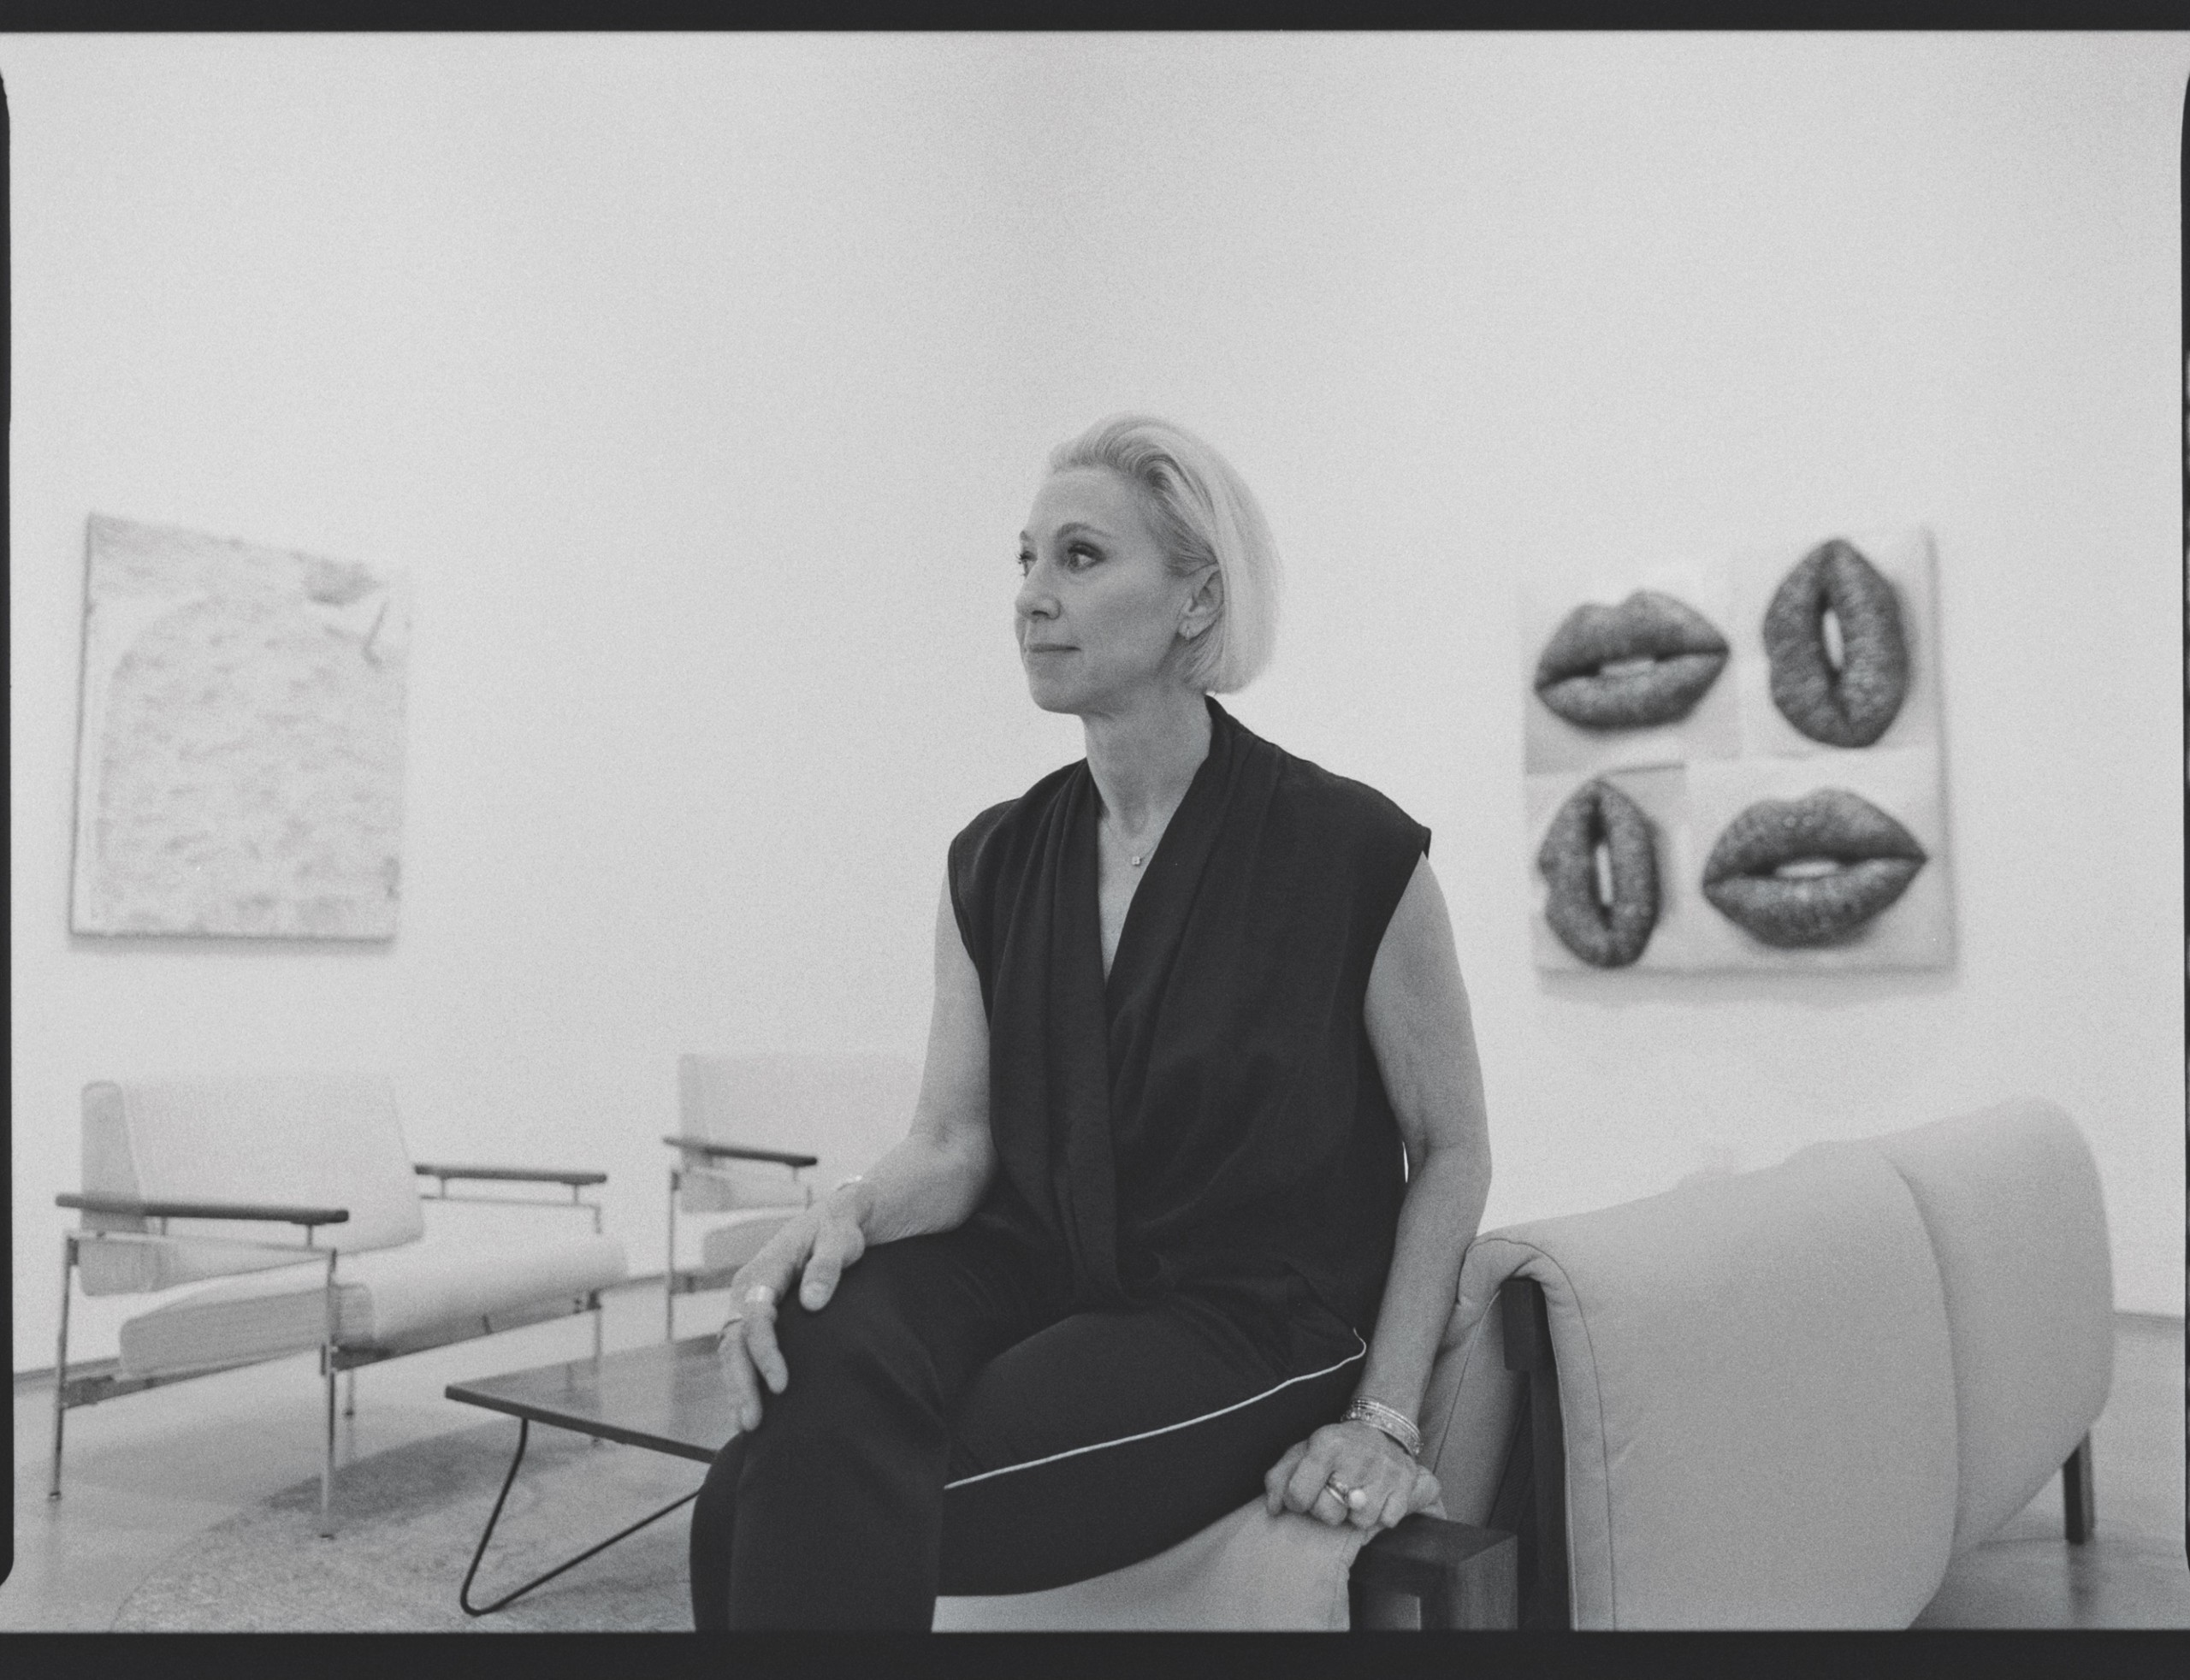 Black and white image of art gallerist sitting in her office space, side profile